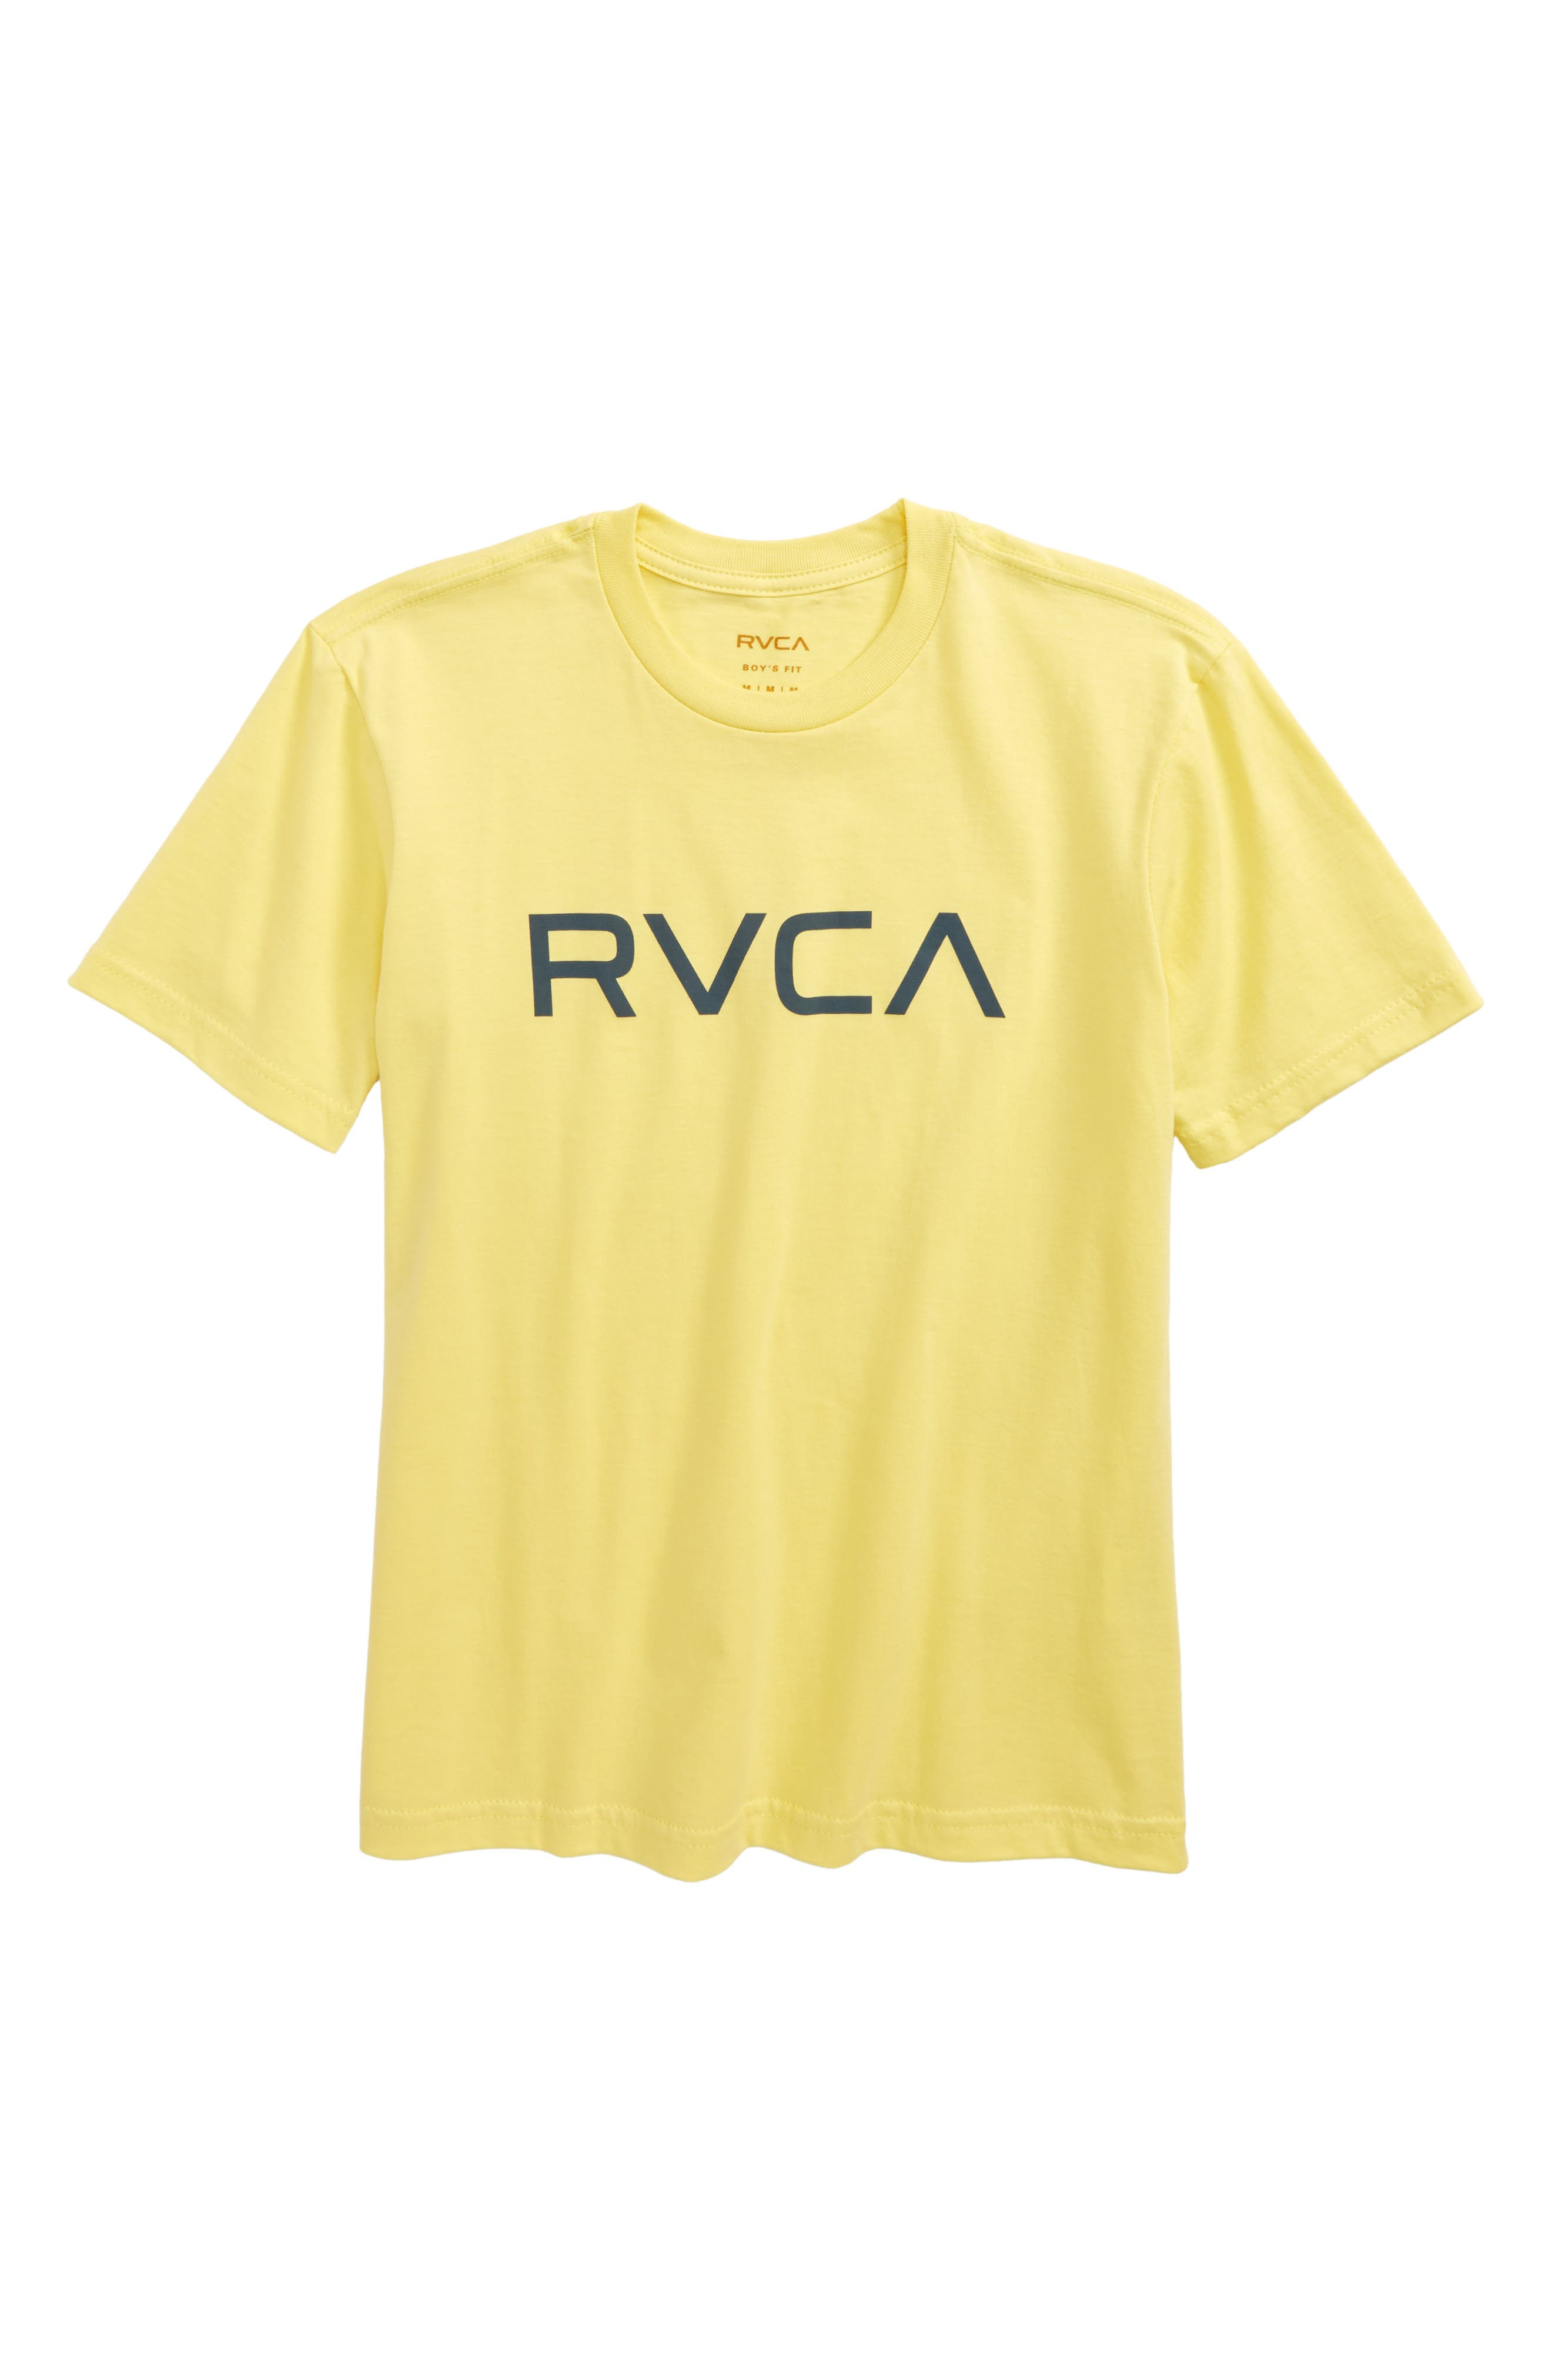 Alternate Image 1 Selected - RVCA Logo Graphic T-Shirt (Big Boys)